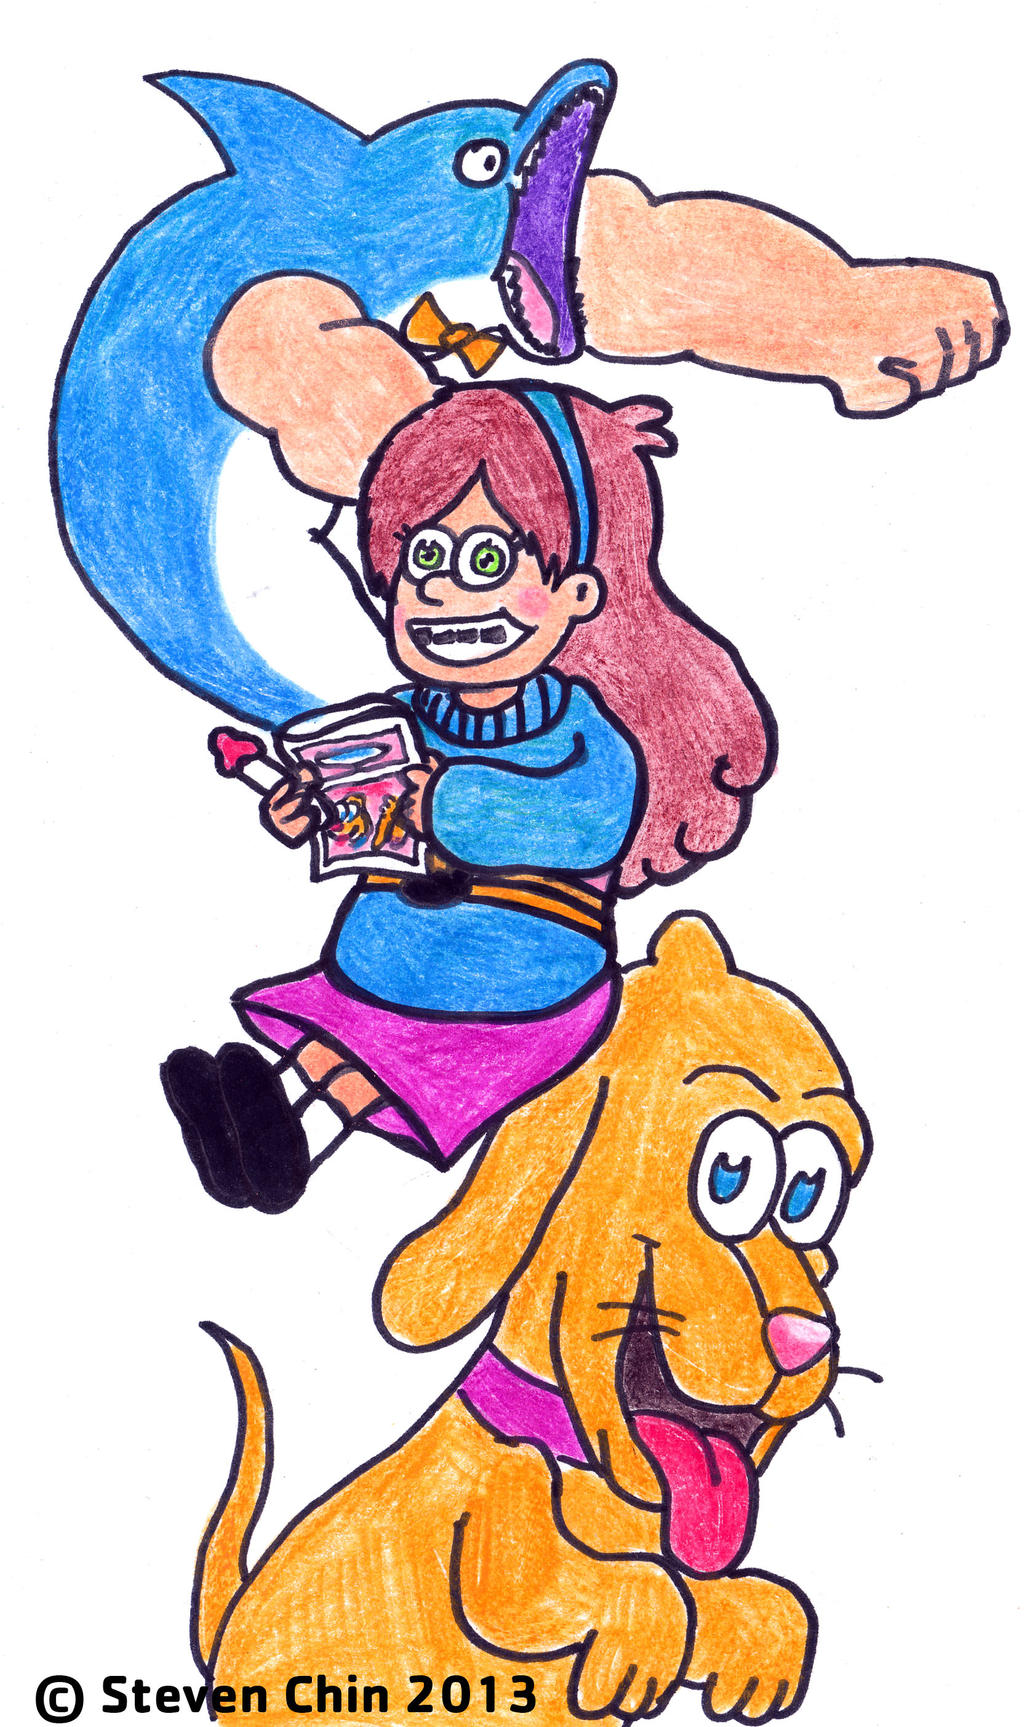 Gravity Falls - Mabel eating Smile Dip by Rocket-Stevo